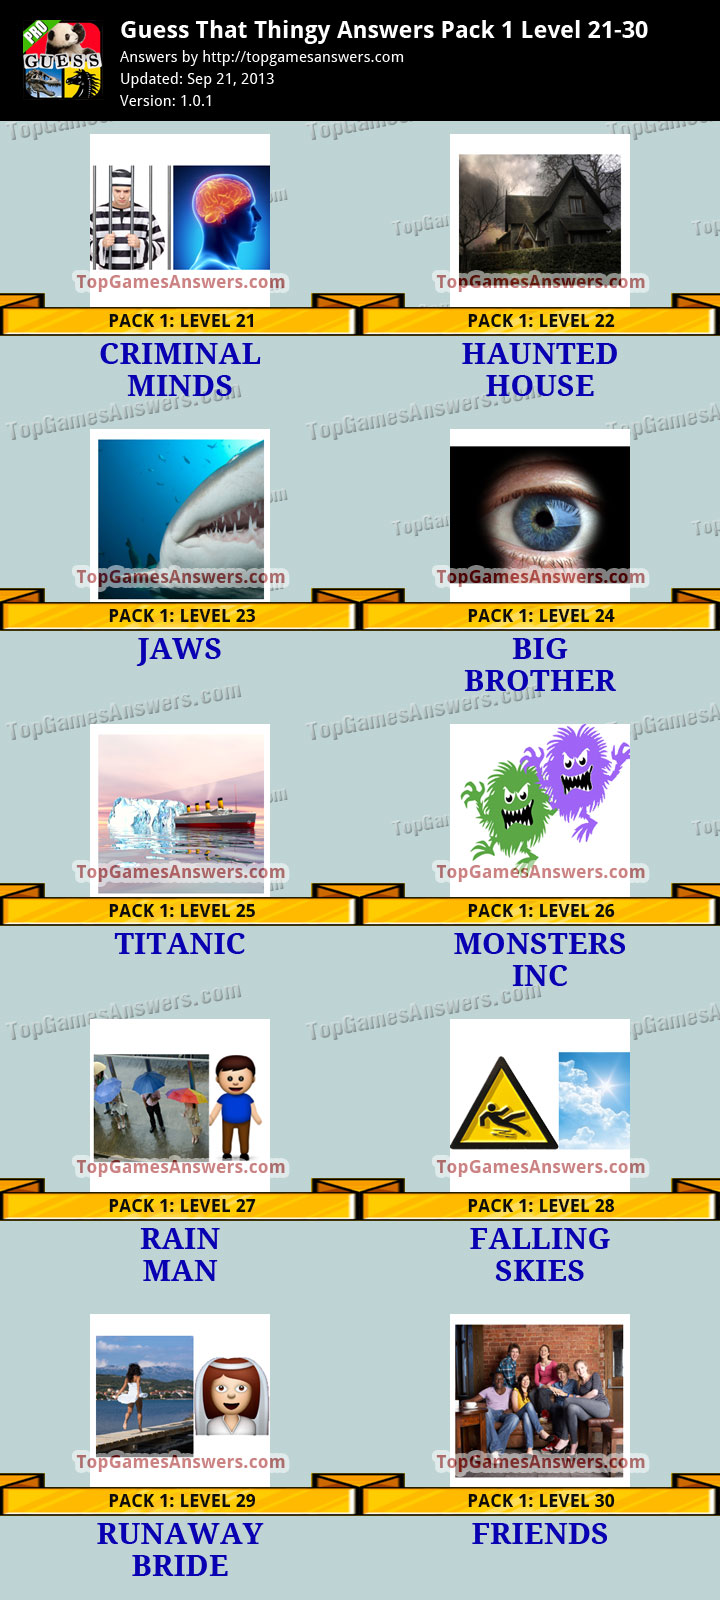 Guess That Thingy Answers Pack 1 - Level 21-30